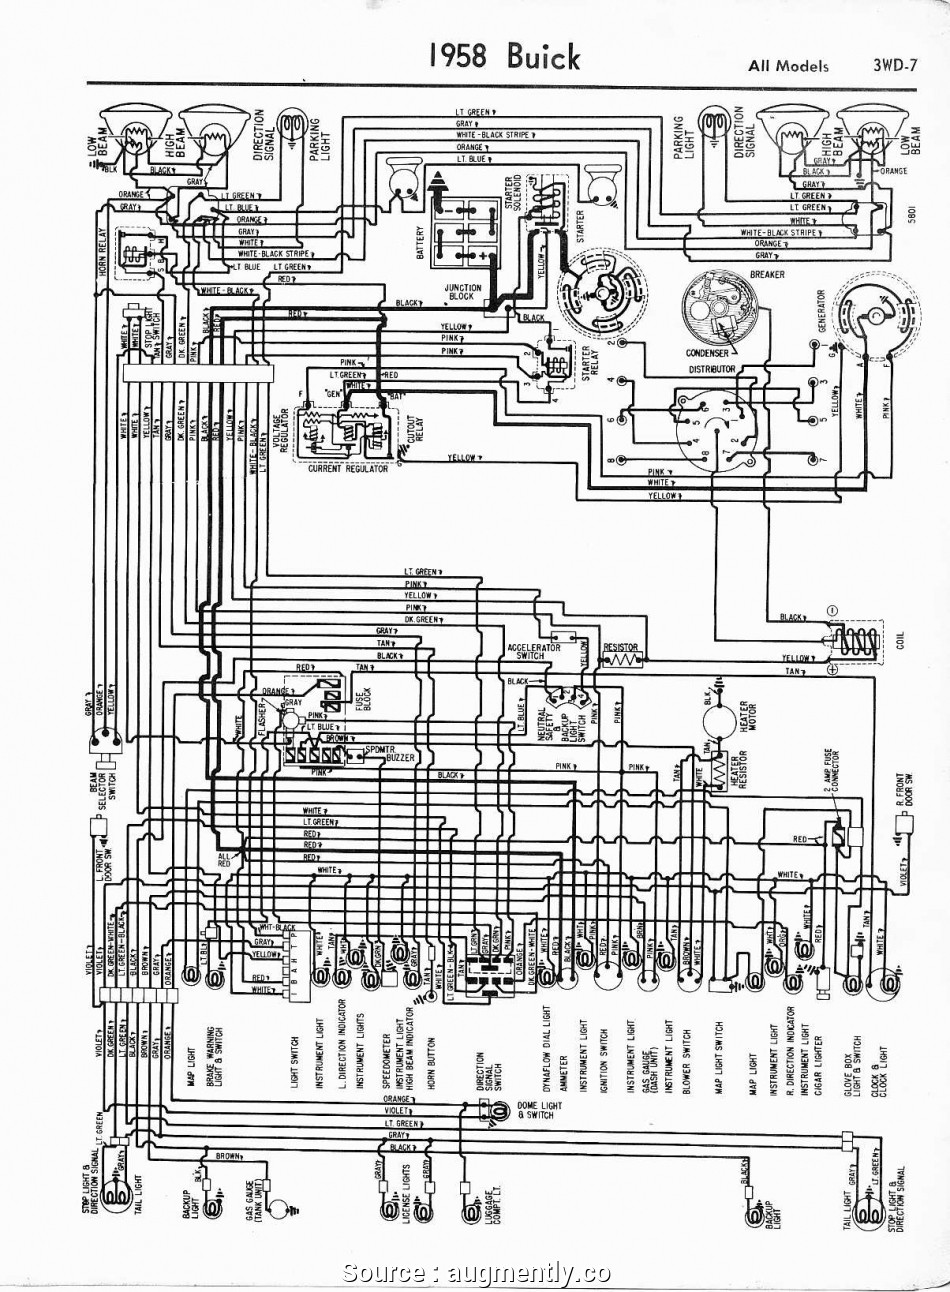 MZ_4430] Wiring Diagrams For 19571965 Buick Download DiagramWww Mohammedshrine Librar Wiring 101